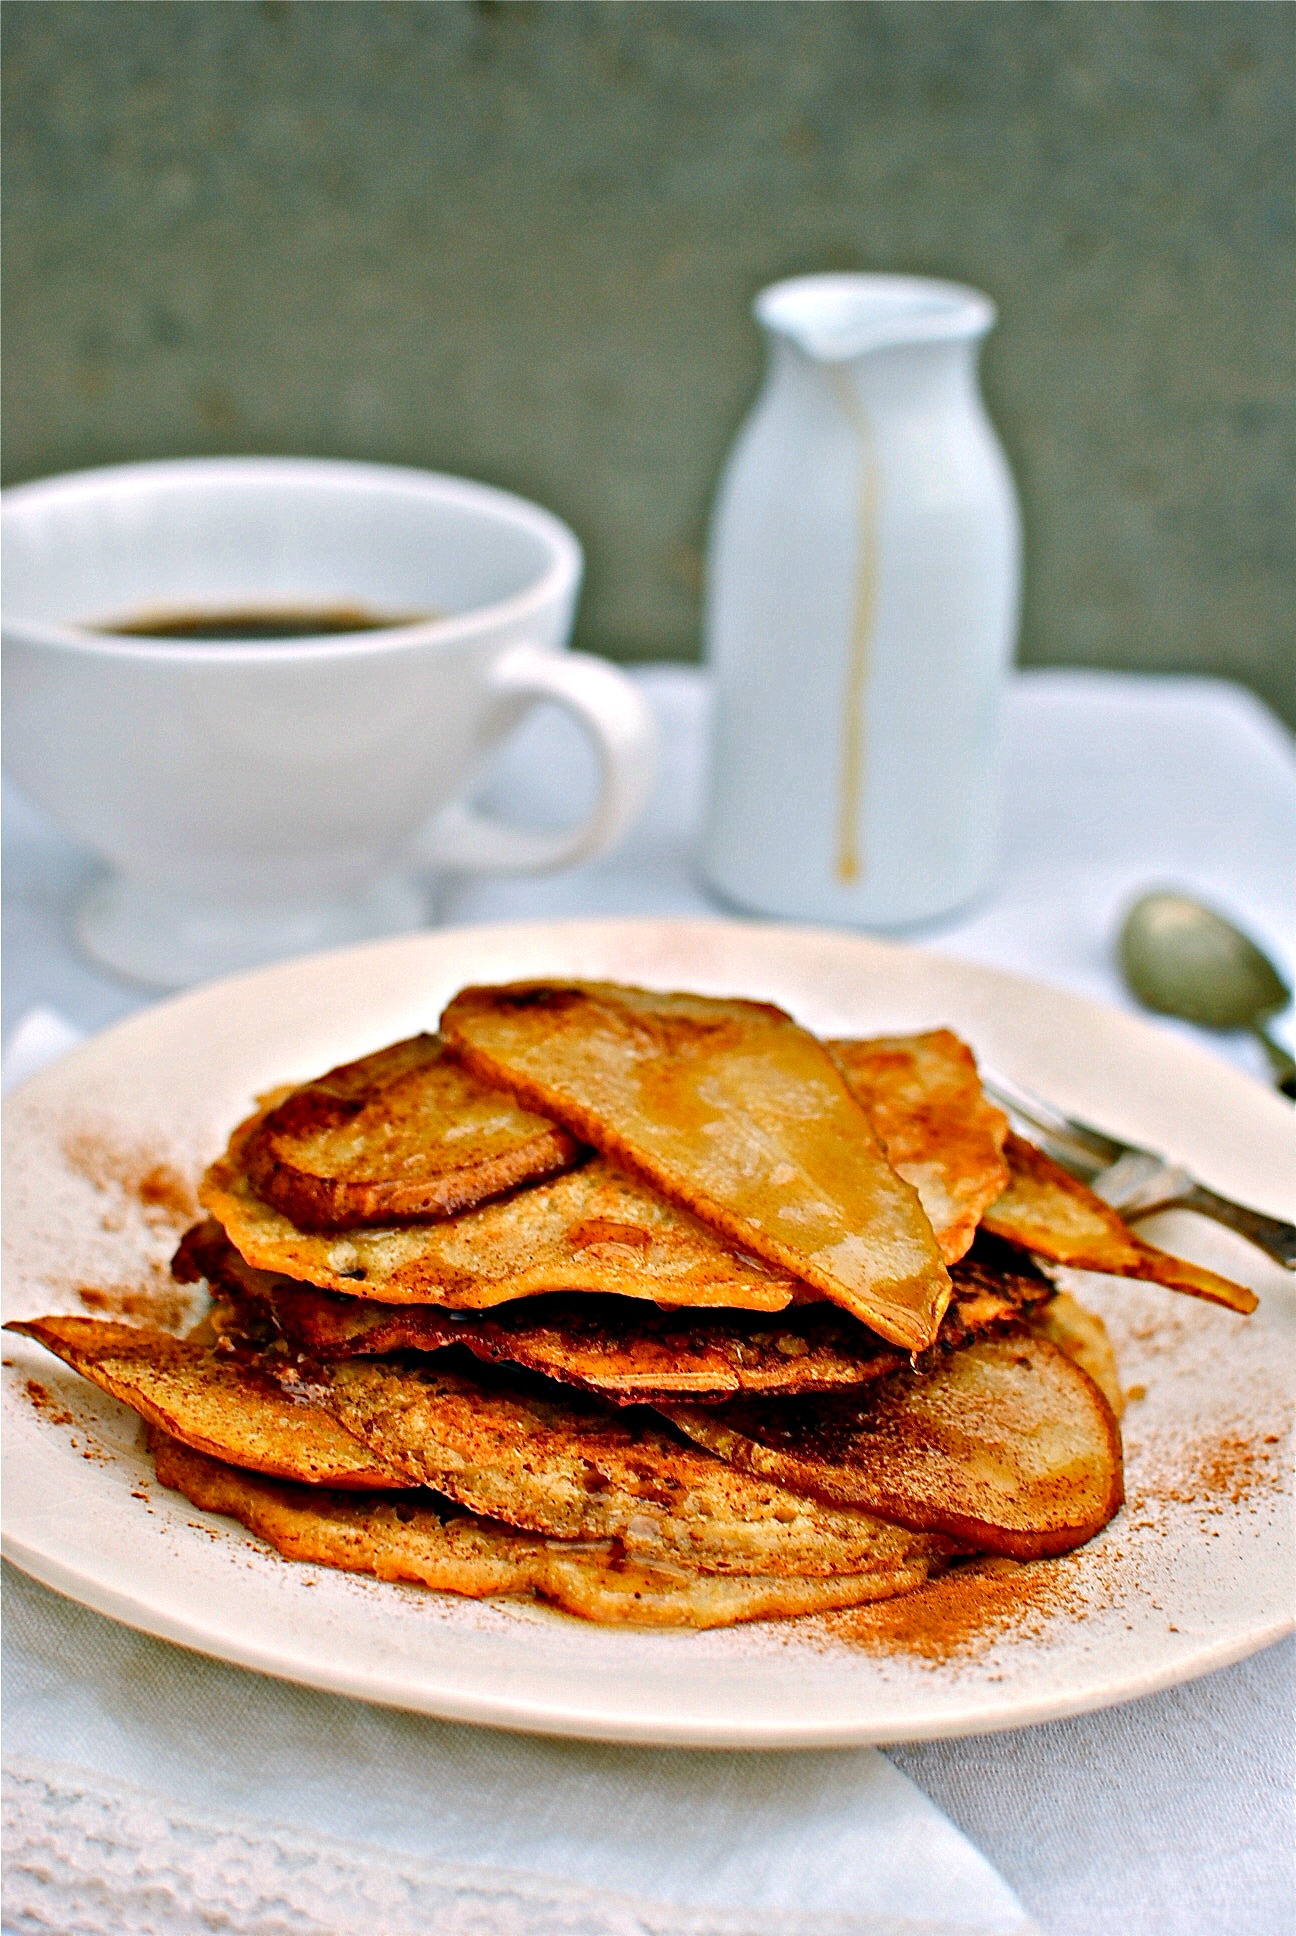 quinoa peanut butter pancakes with cinnamon and pear. Black Bedroom Furniture Sets. Home Design Ideas